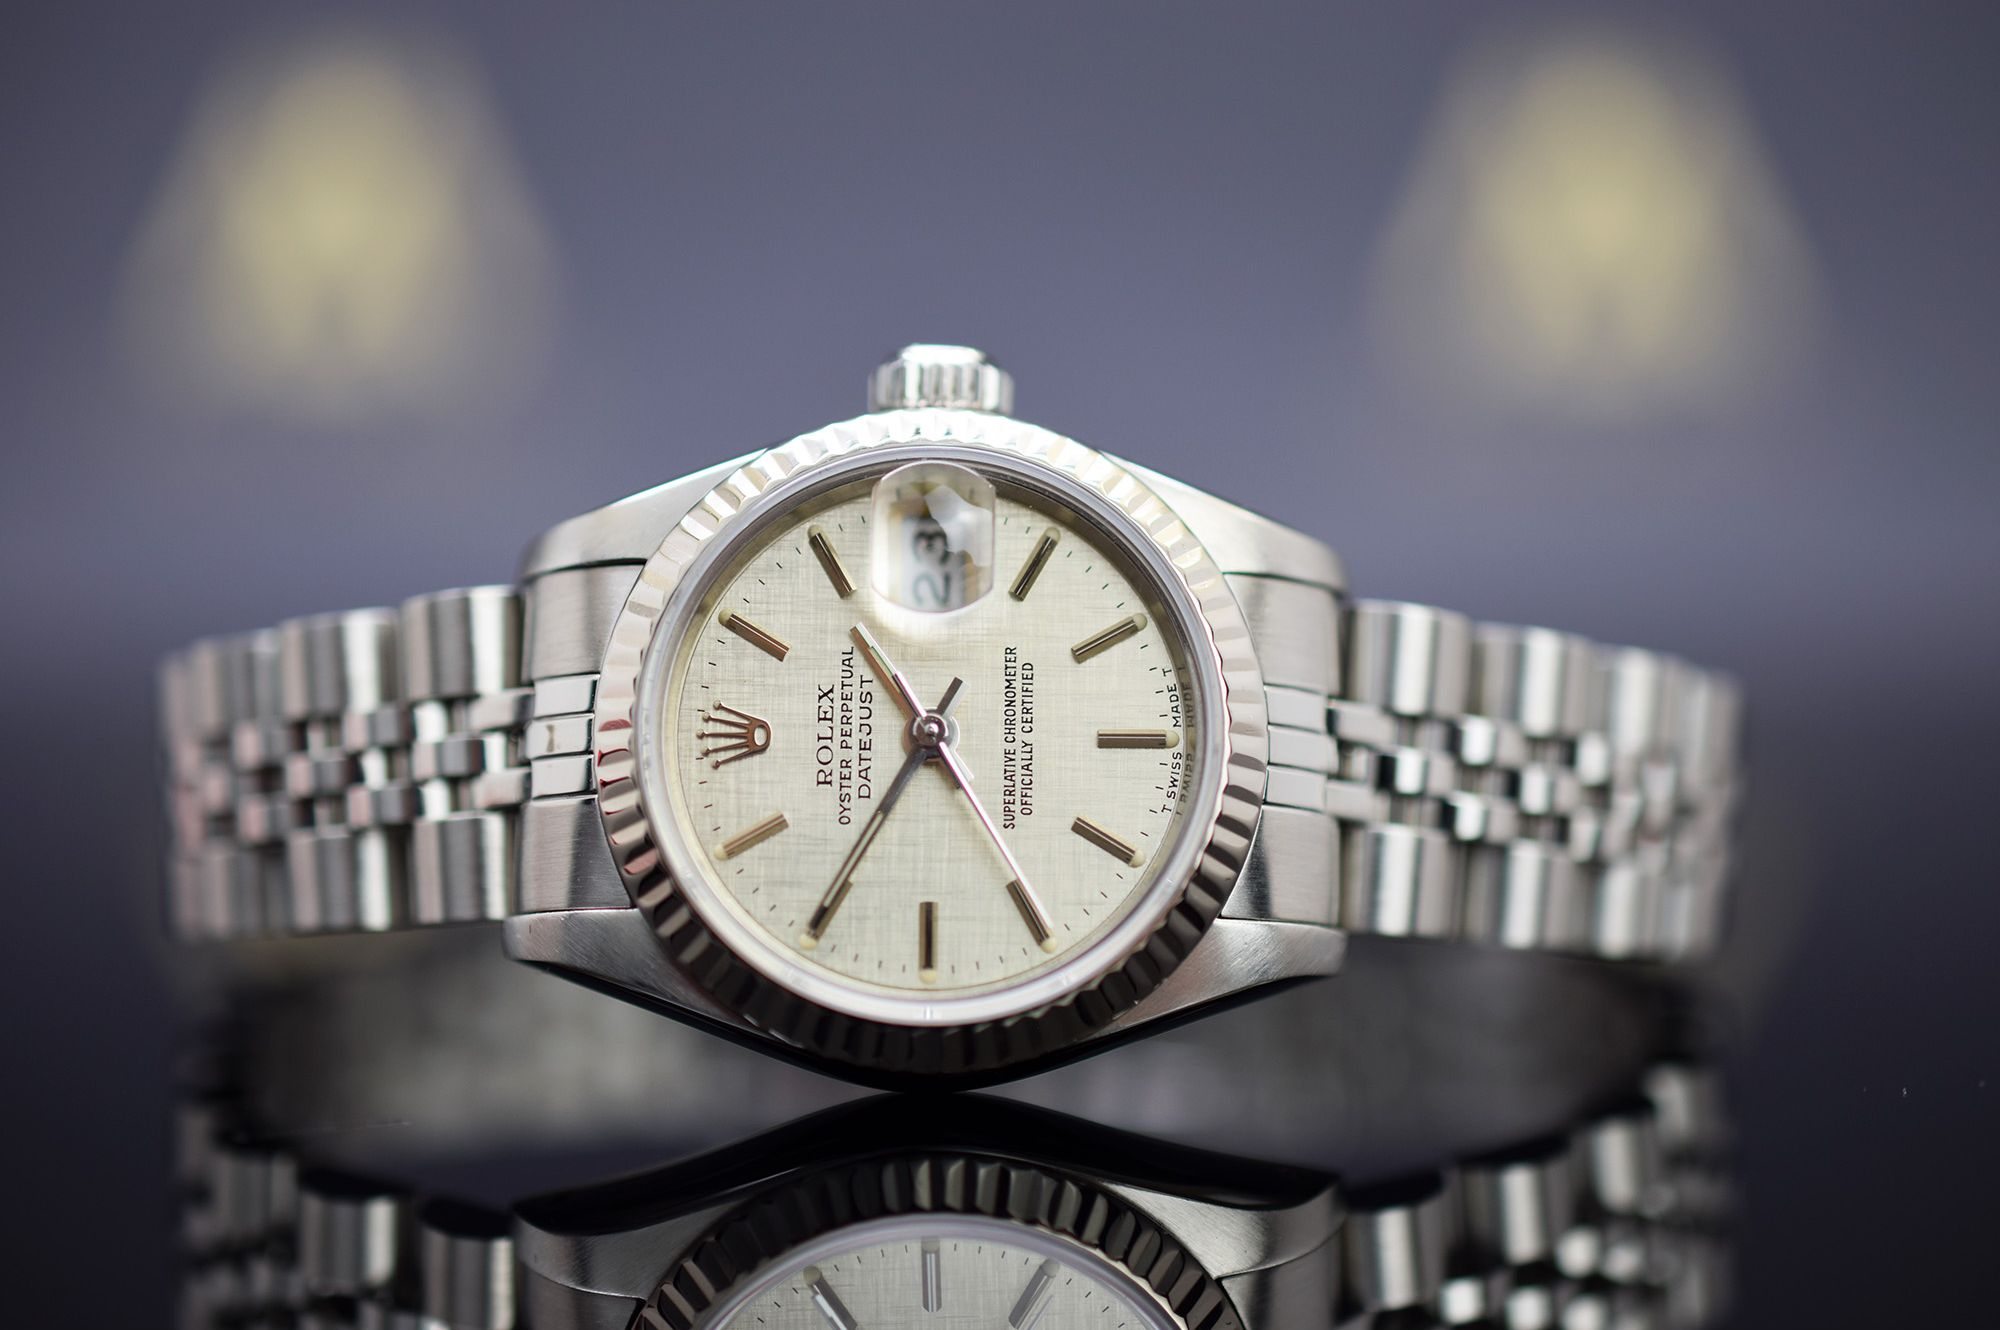 Rolex Oyster Perpetual Datejust - Aus 1988